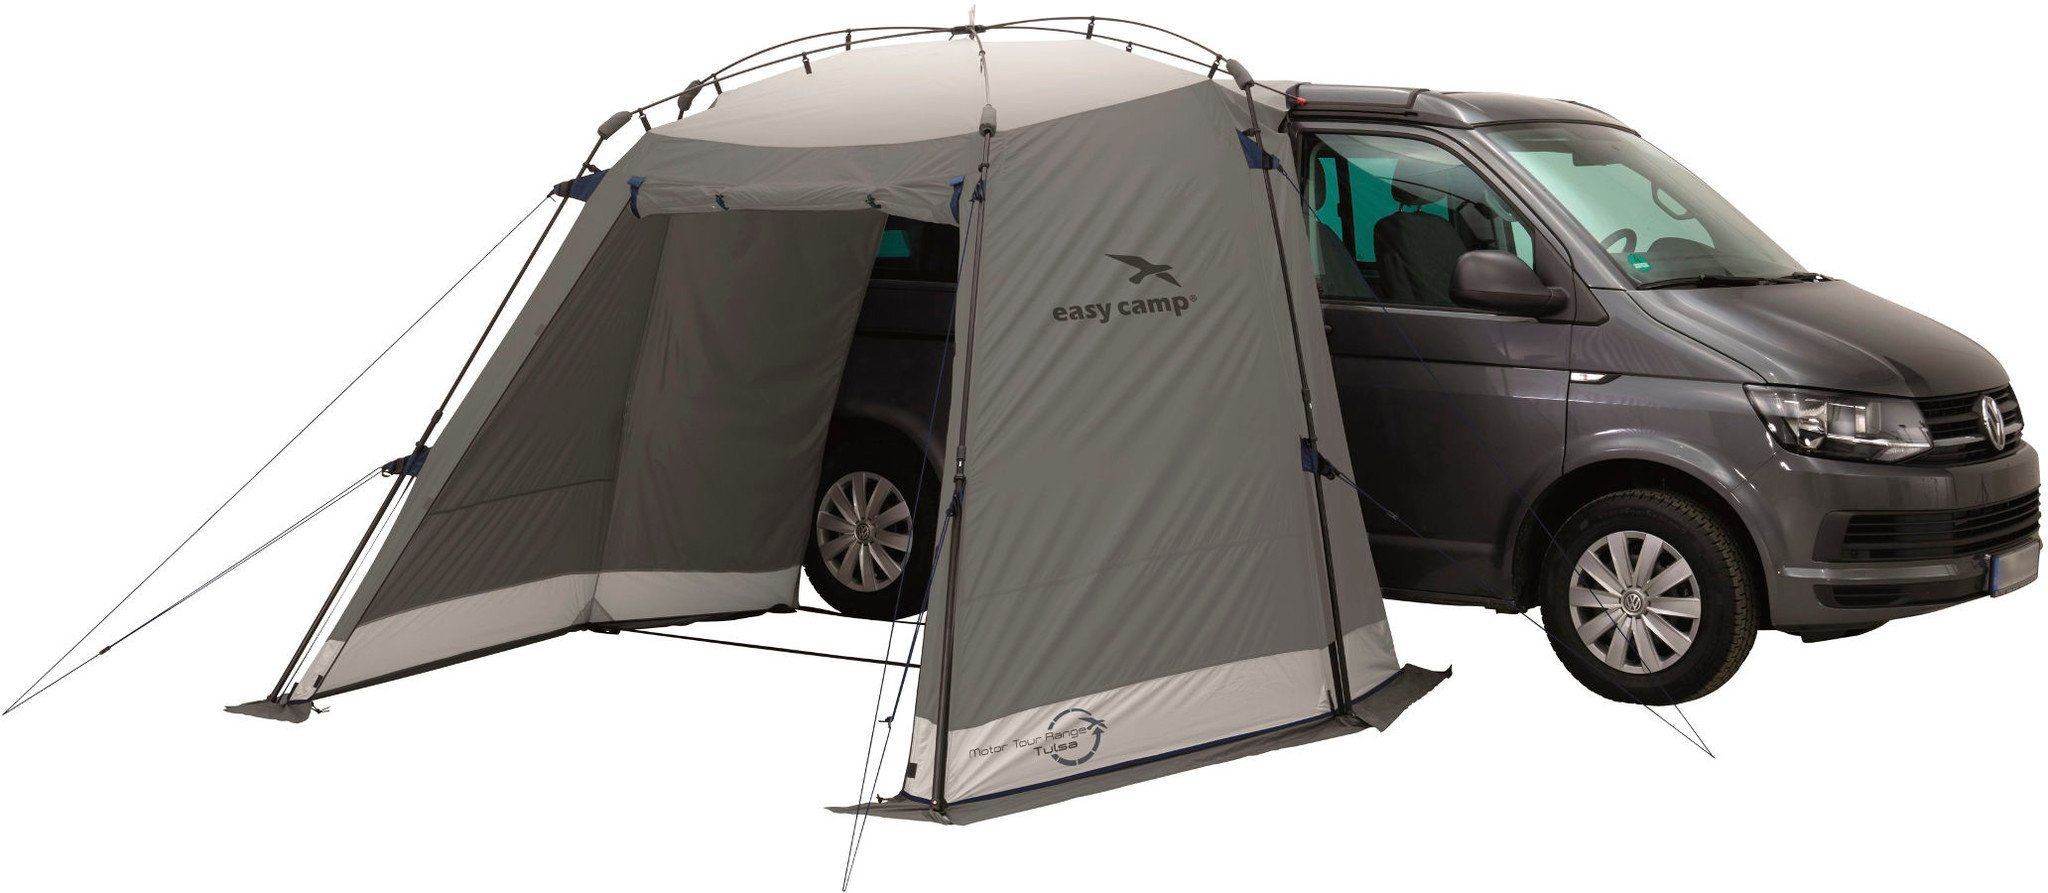 Easy Camp Zelt »Tulsa Tent«